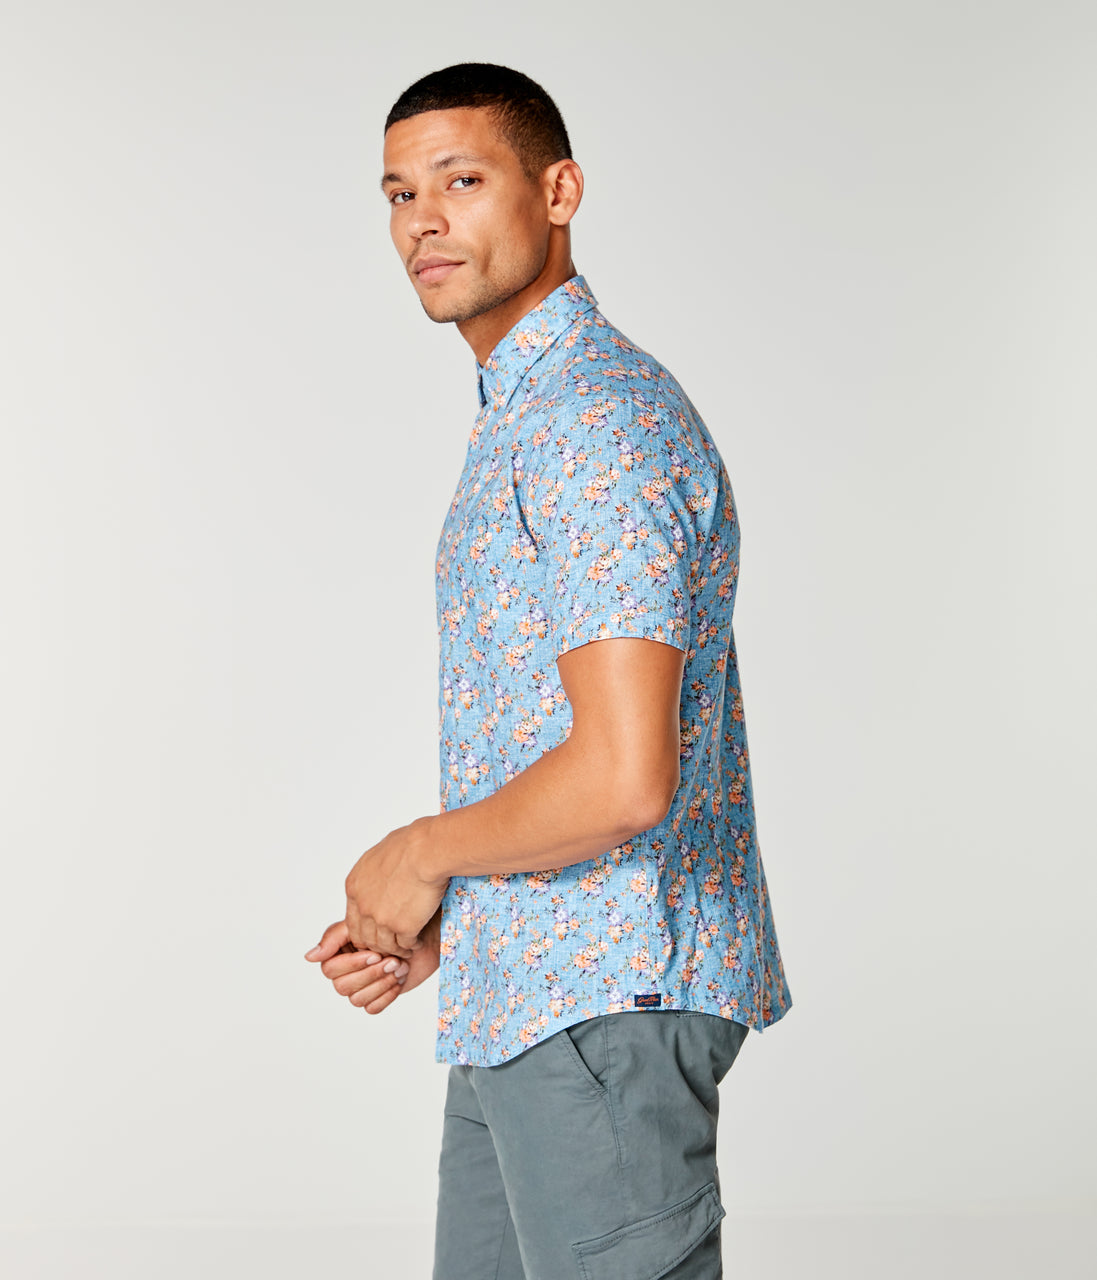 Woven On-Point Shirt - Indigo Vintage Morning Floral - Good Man Brand - On-Point Print Shirt Short Sleeve - Indigo Vintage Morning Floral